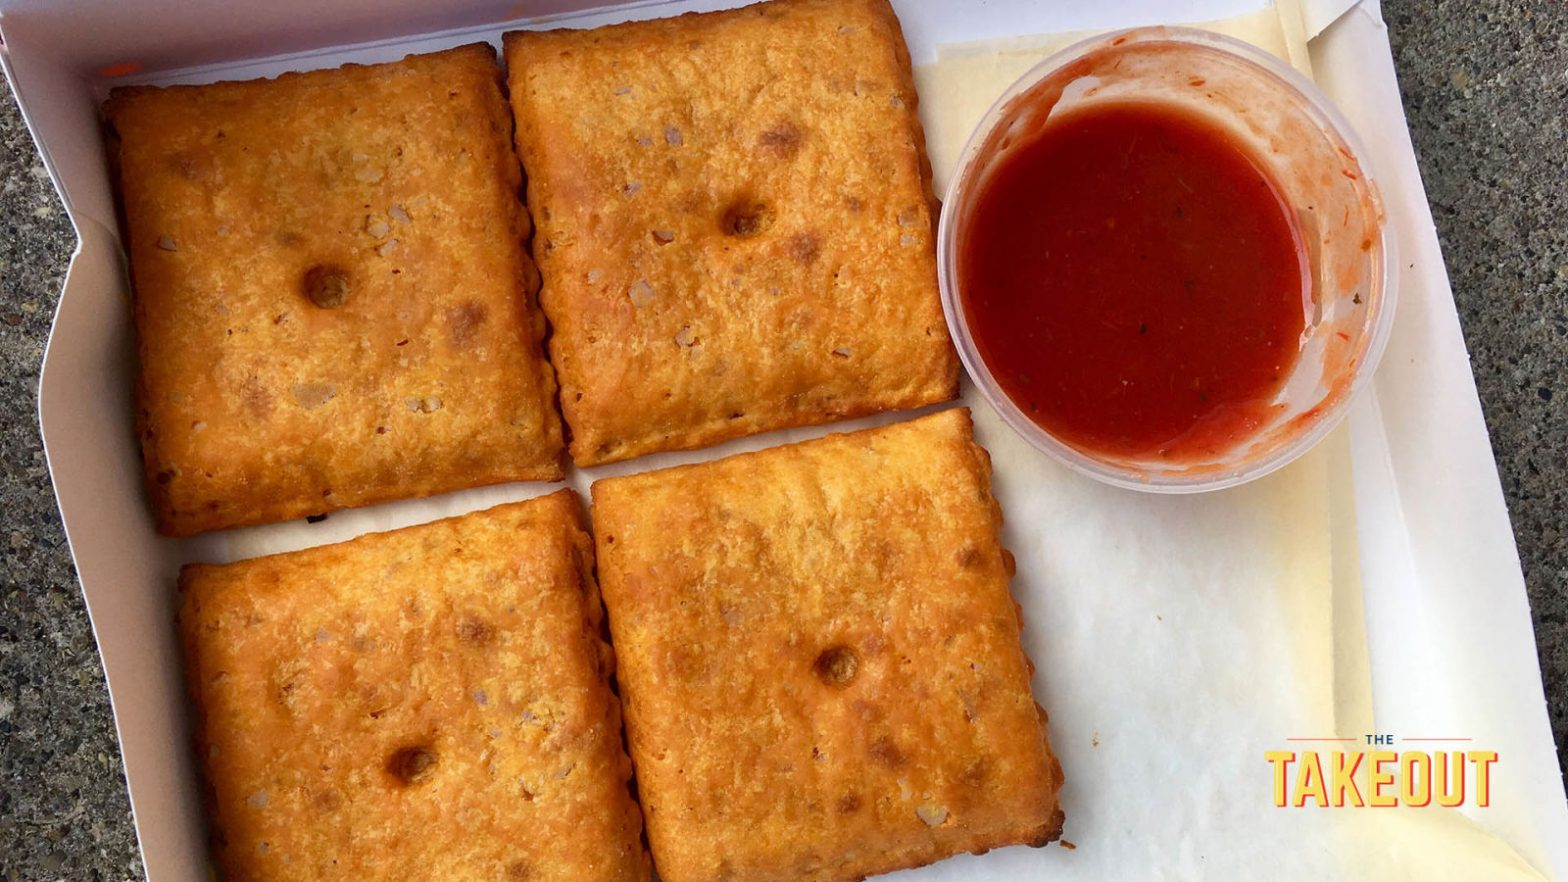 Pizza Hut's Stuffed Cheez-It Pizza tests the limits of snack food fusion – The Takeout